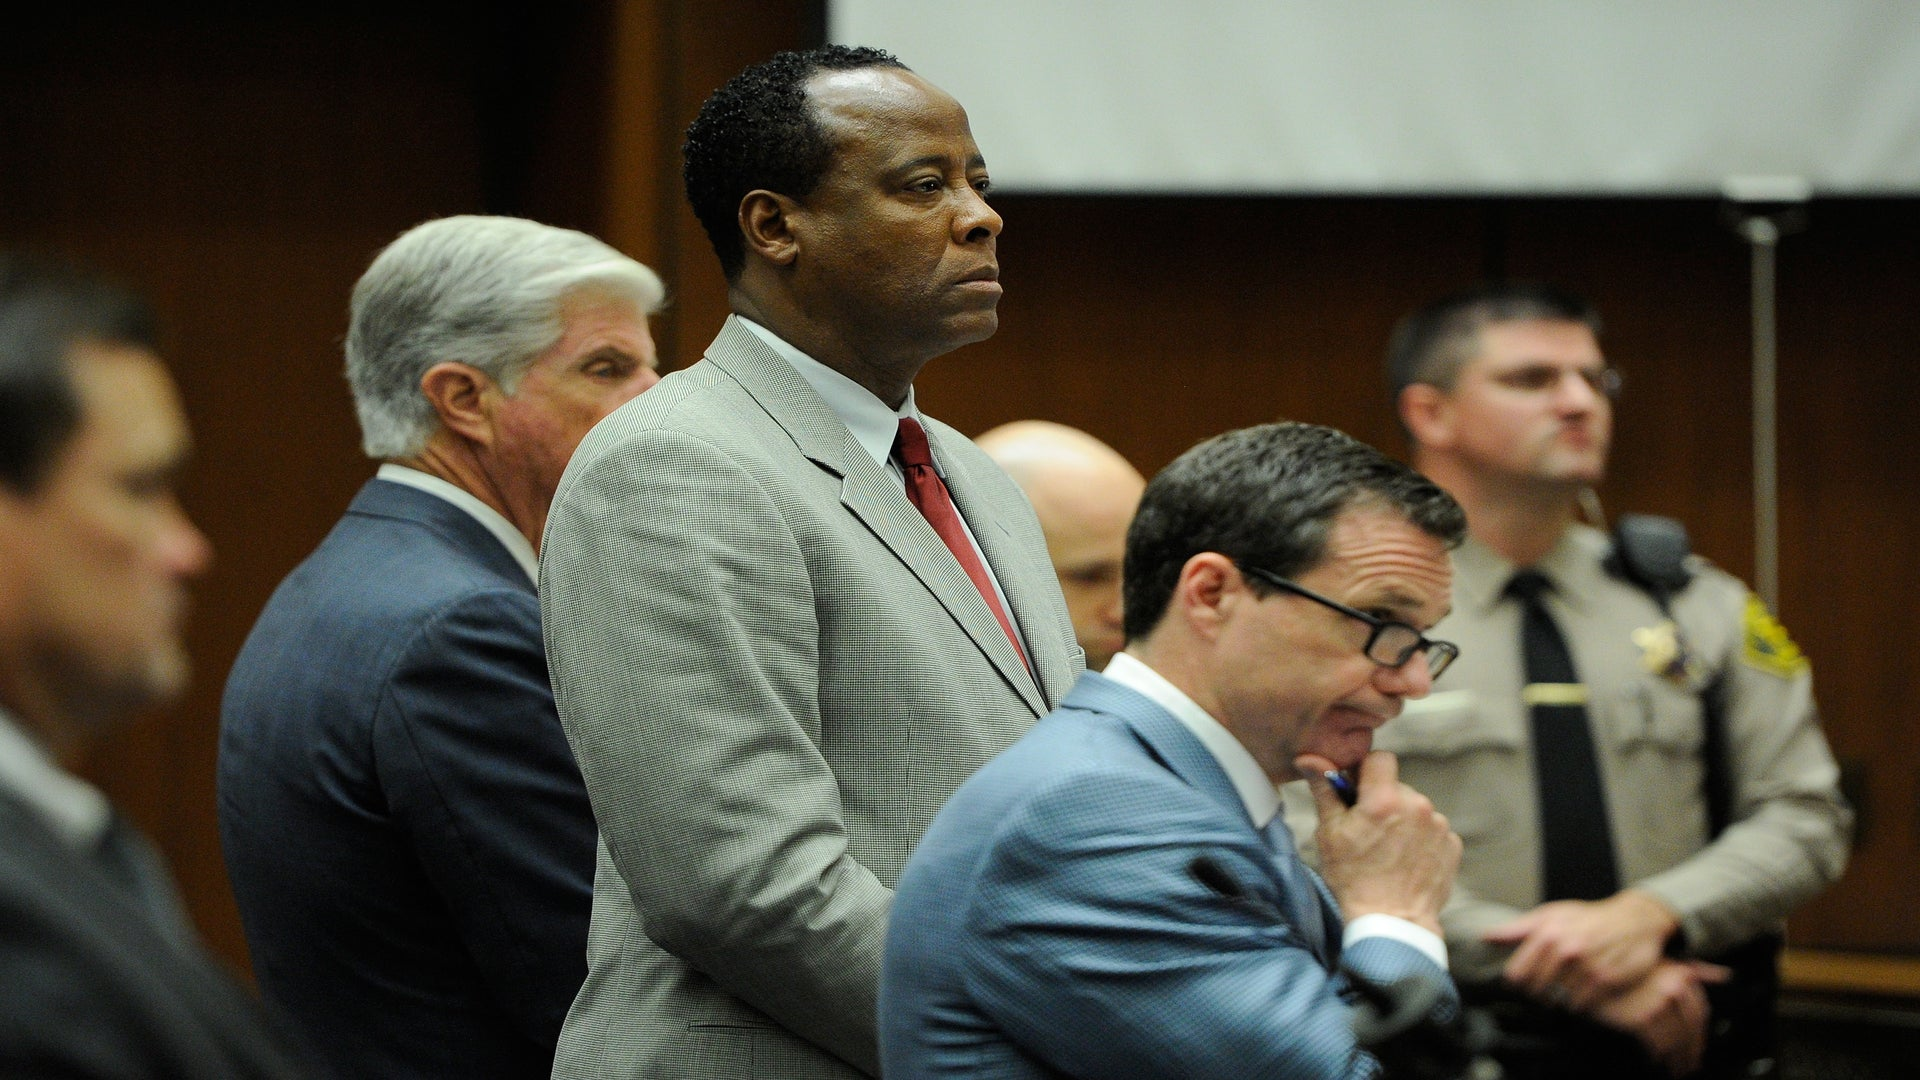 Jury Inches Toward Deliberation in MJ Doctor Trial